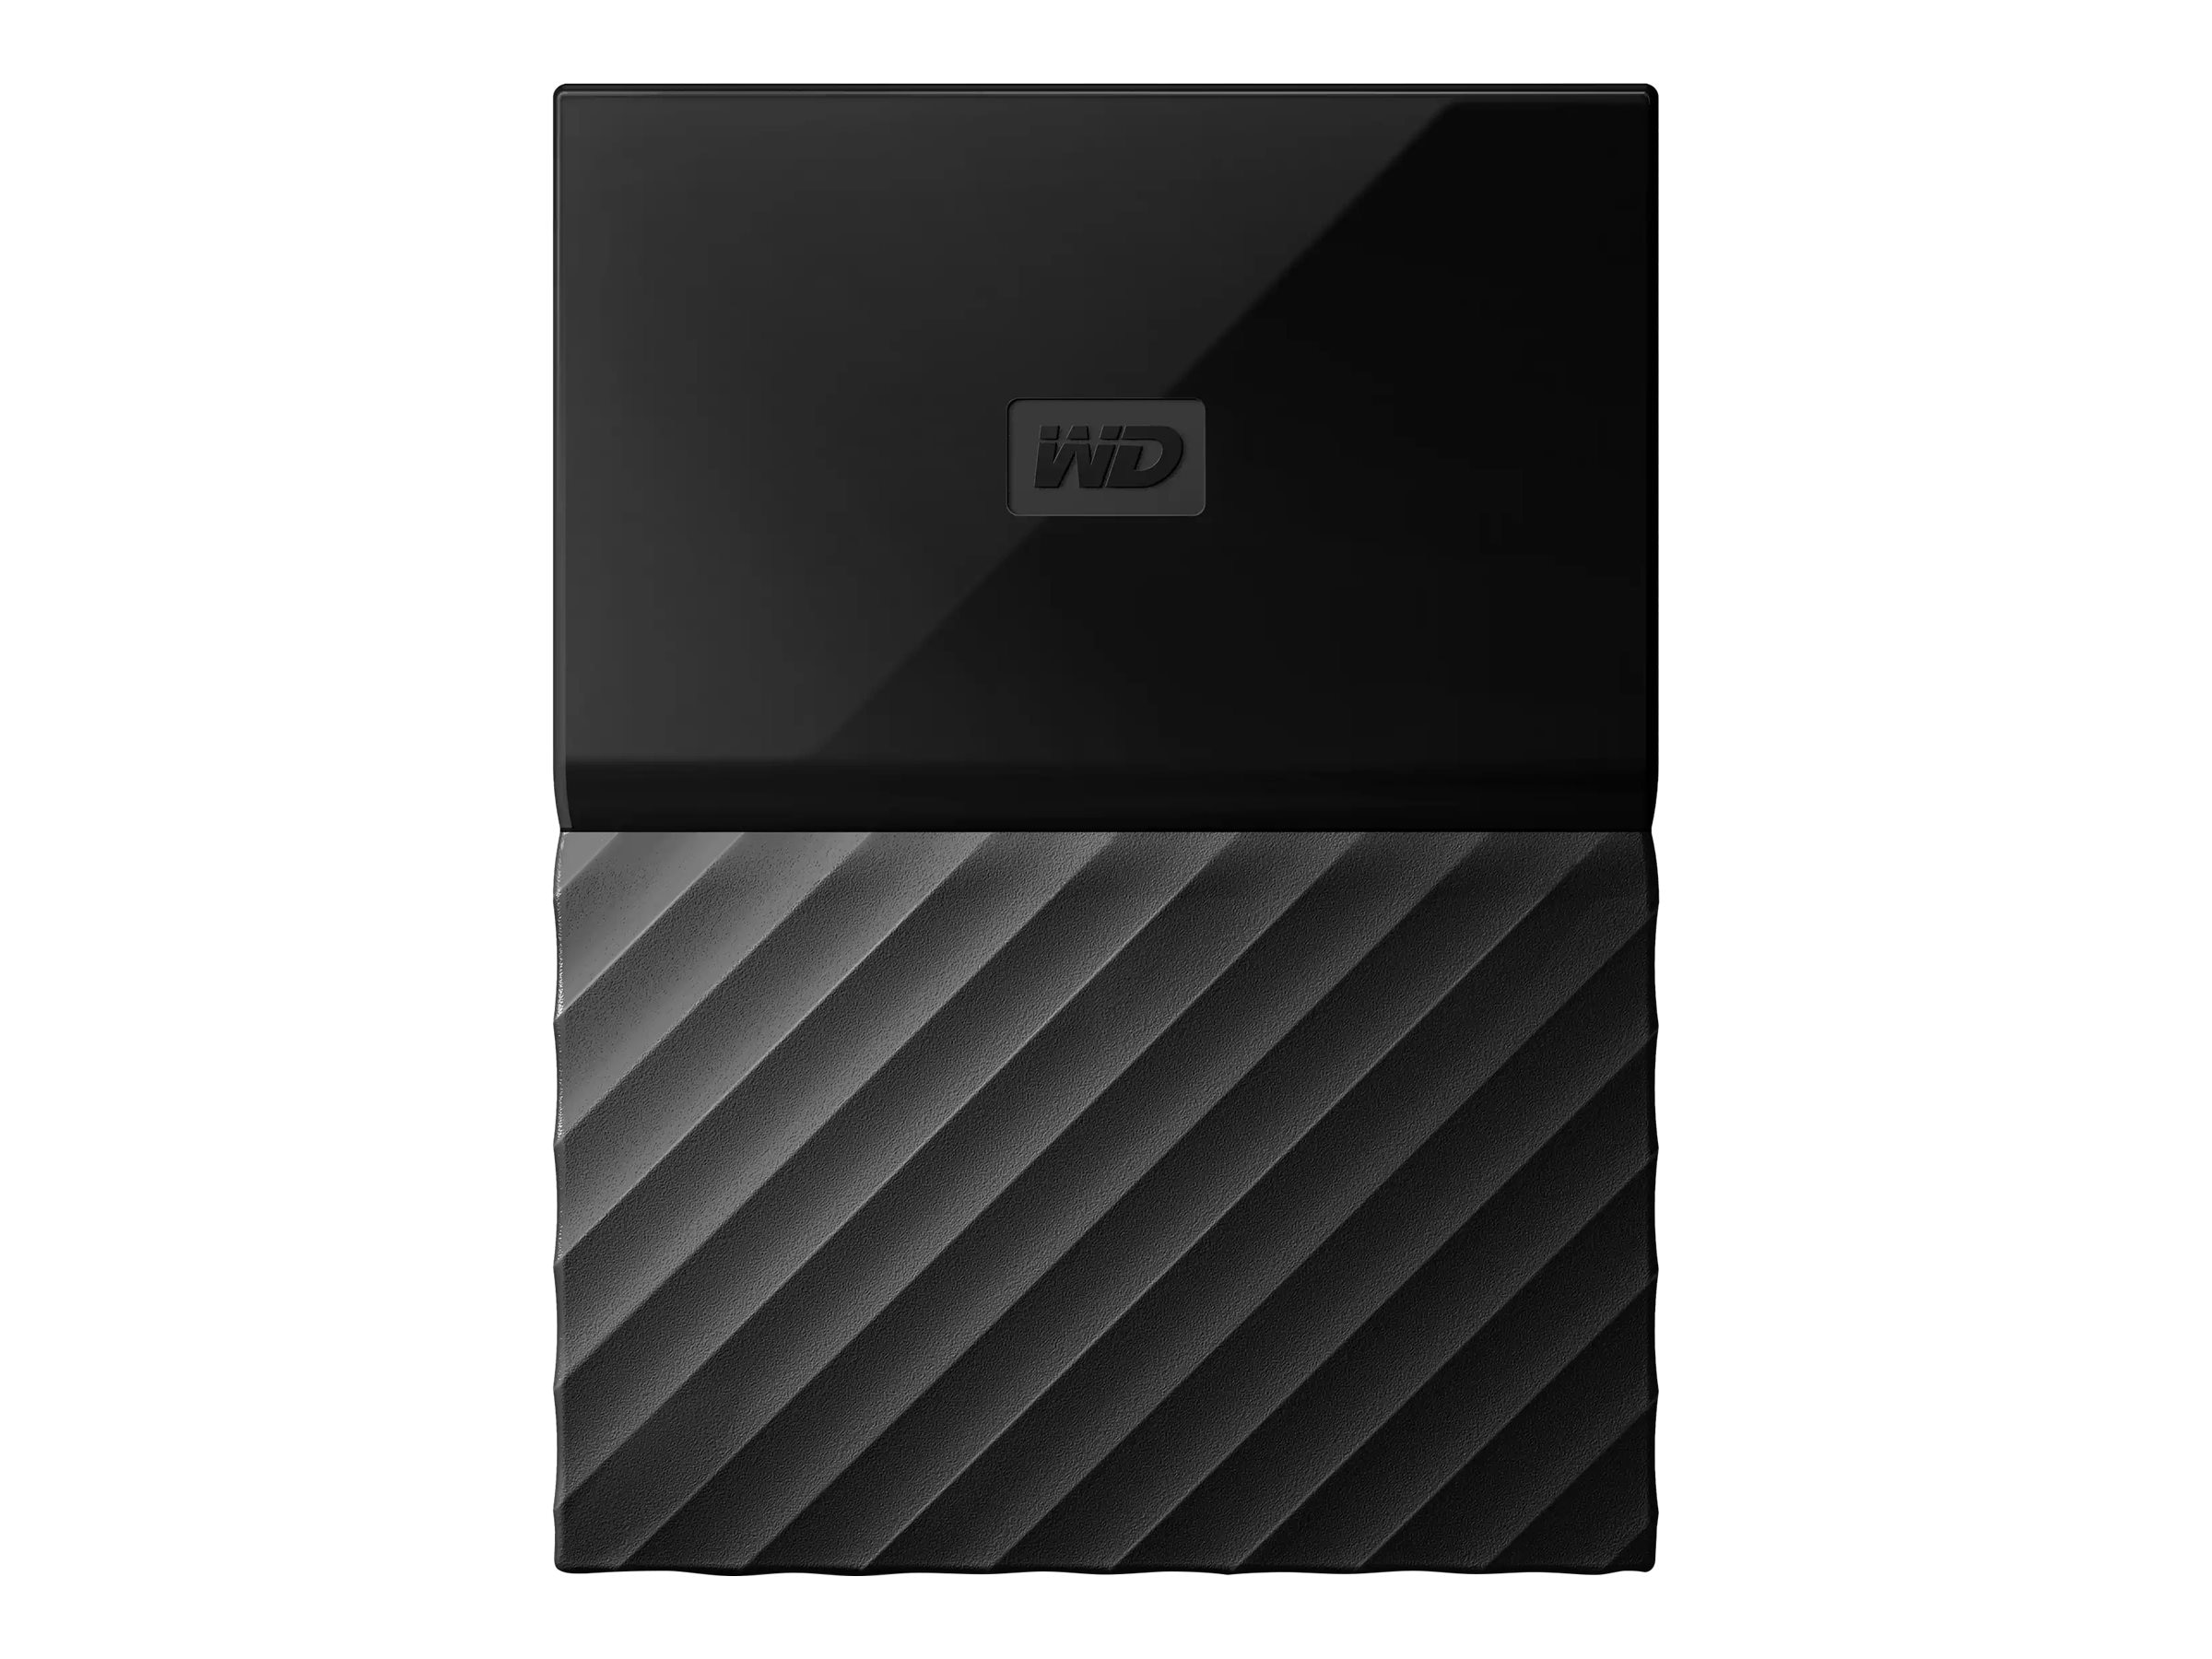 WD 4TB My Passport Ultra, Black, WDBYFT0040BBK-WESN